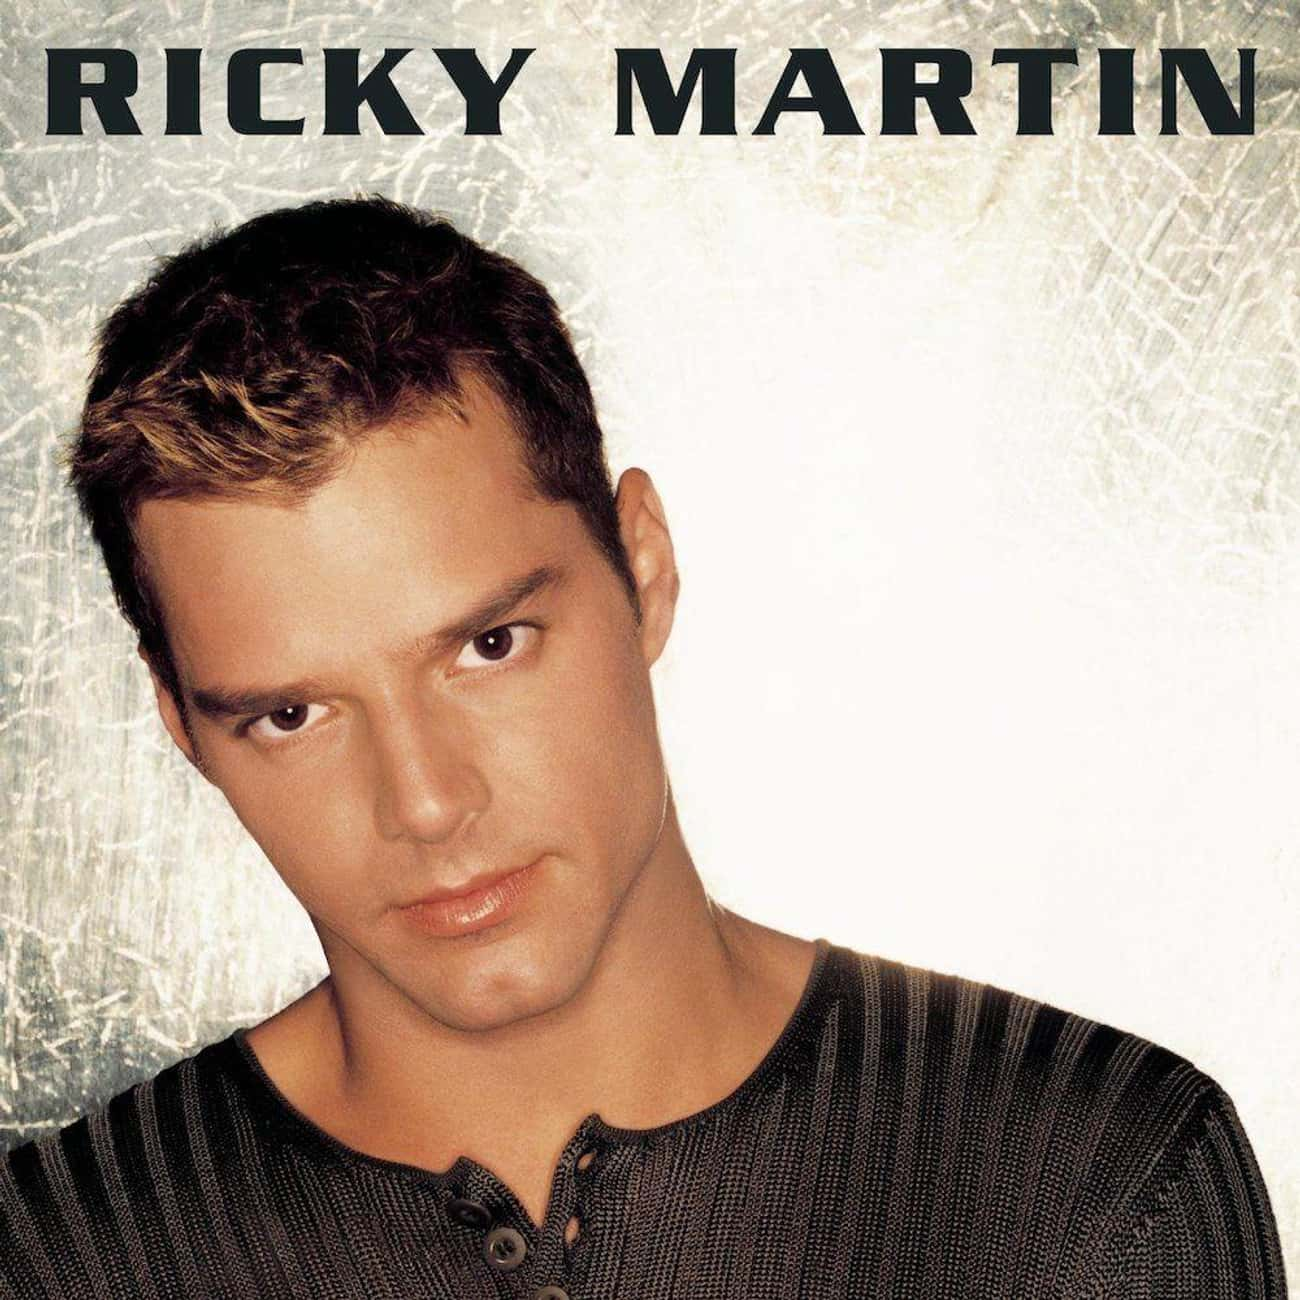 'Ricky Martin' - Ricky Martin is listed (or ranked) 4 on the list What '90s CDs Are You Most Embarrassed You Owned?